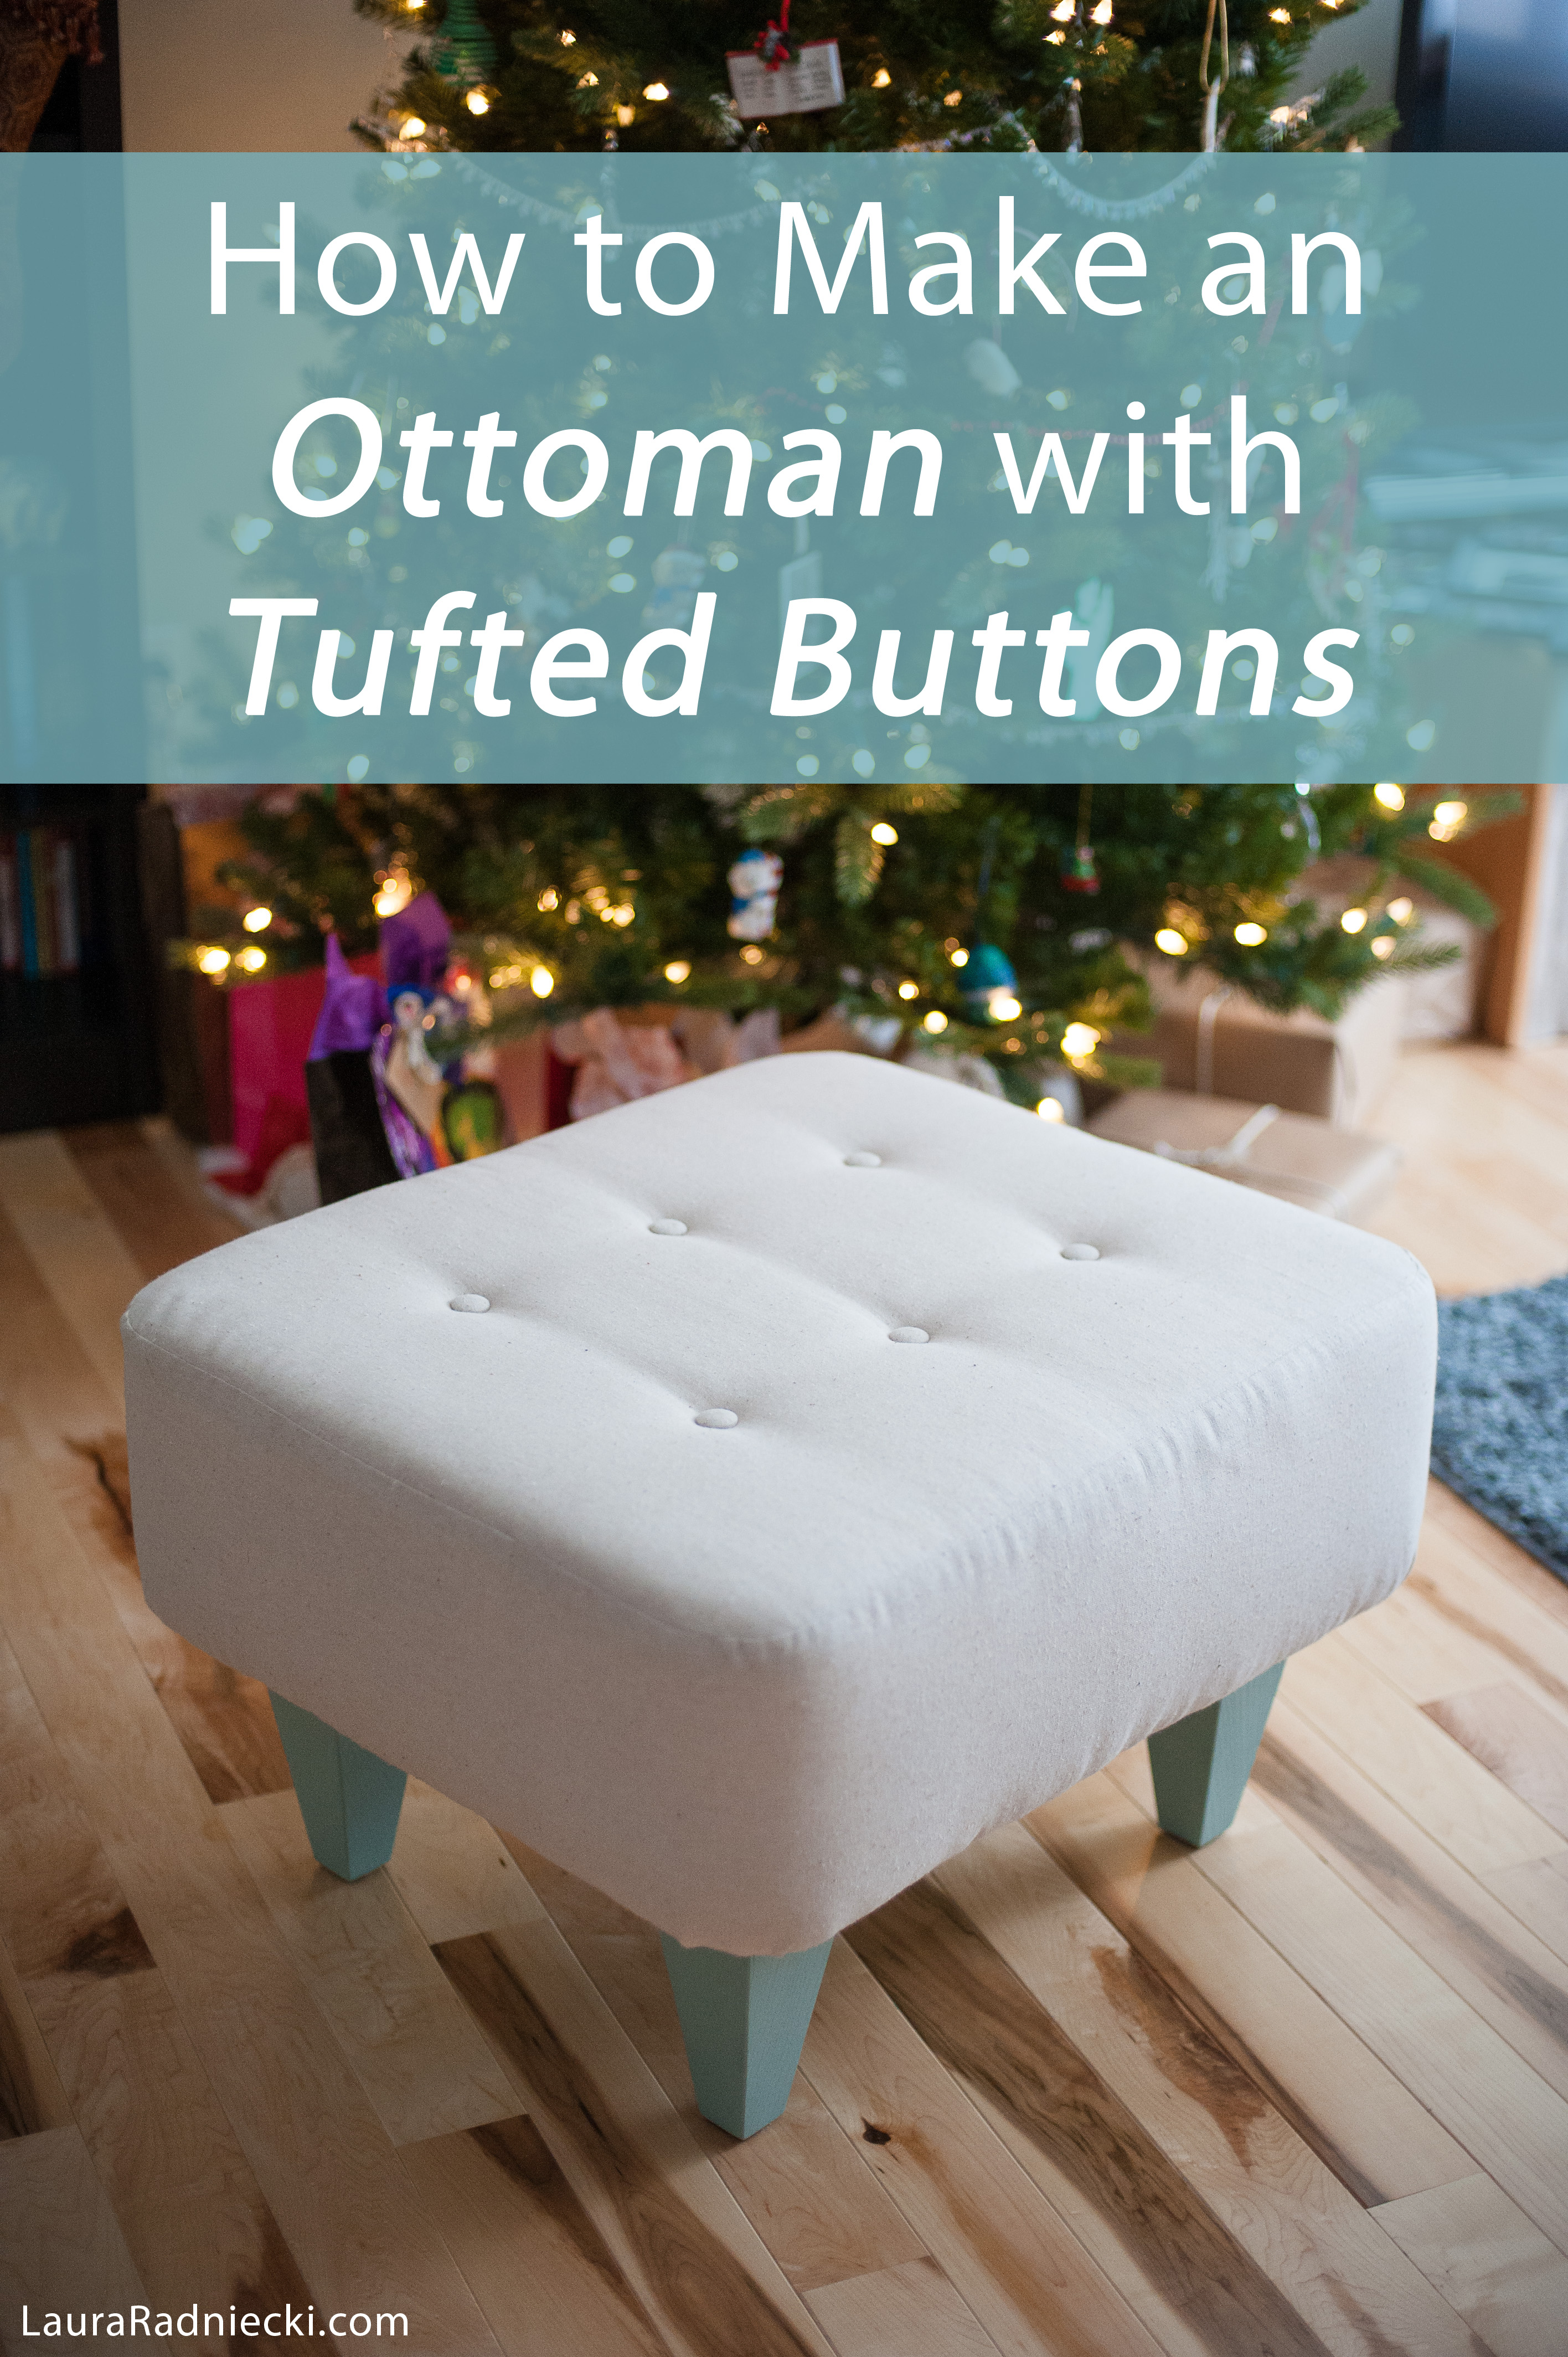 Diy Ottoman With Tufted Buttons Tutorial How To Make An